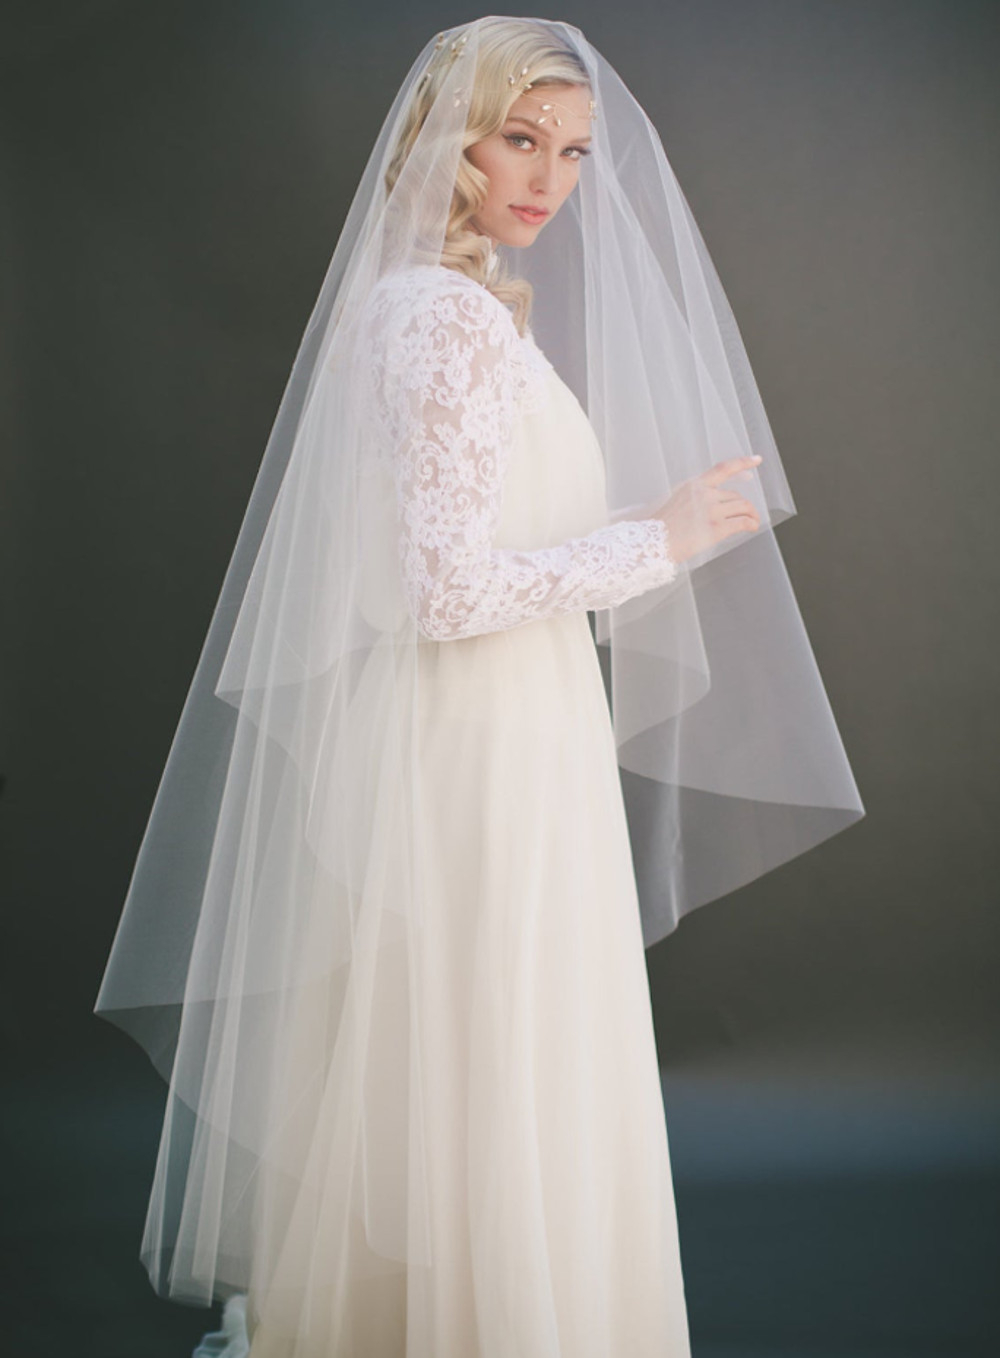 Olivia_Two Tier Waltz Length Bridal Veil with Cut Edge_3 main product pic